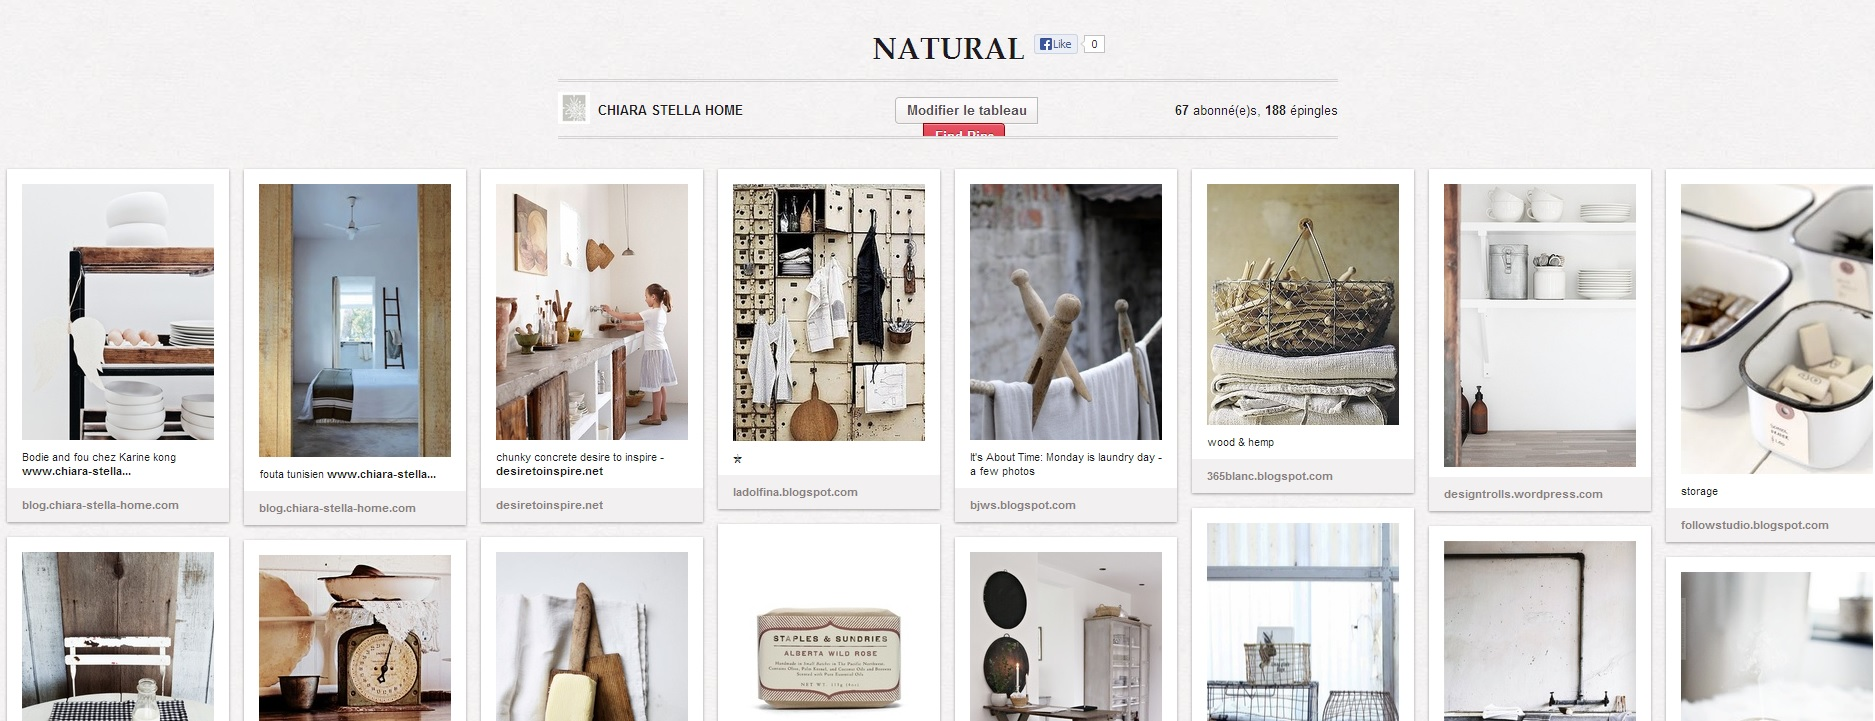 pinterest chiara stella home natural